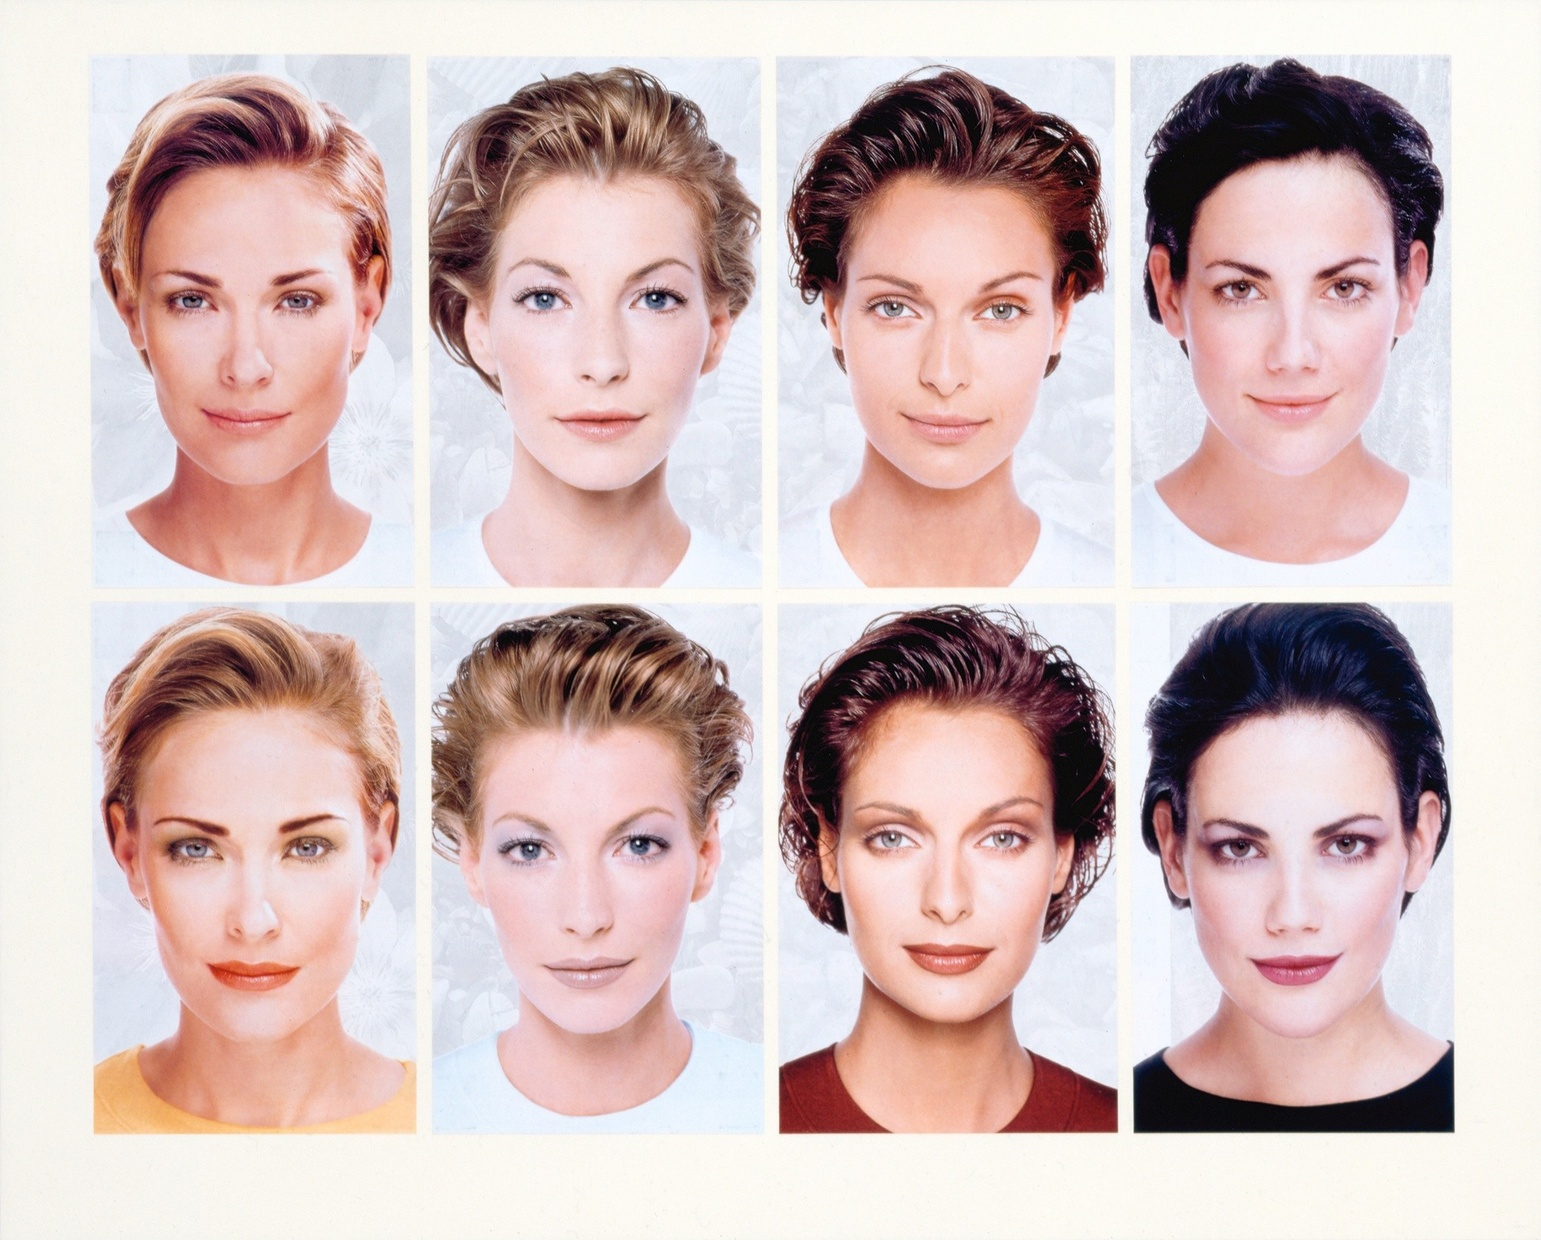 A grid of eight photographs of light-skinned woman not wearing makeup in the top row and then the same women wearing makeup in the bottom row.